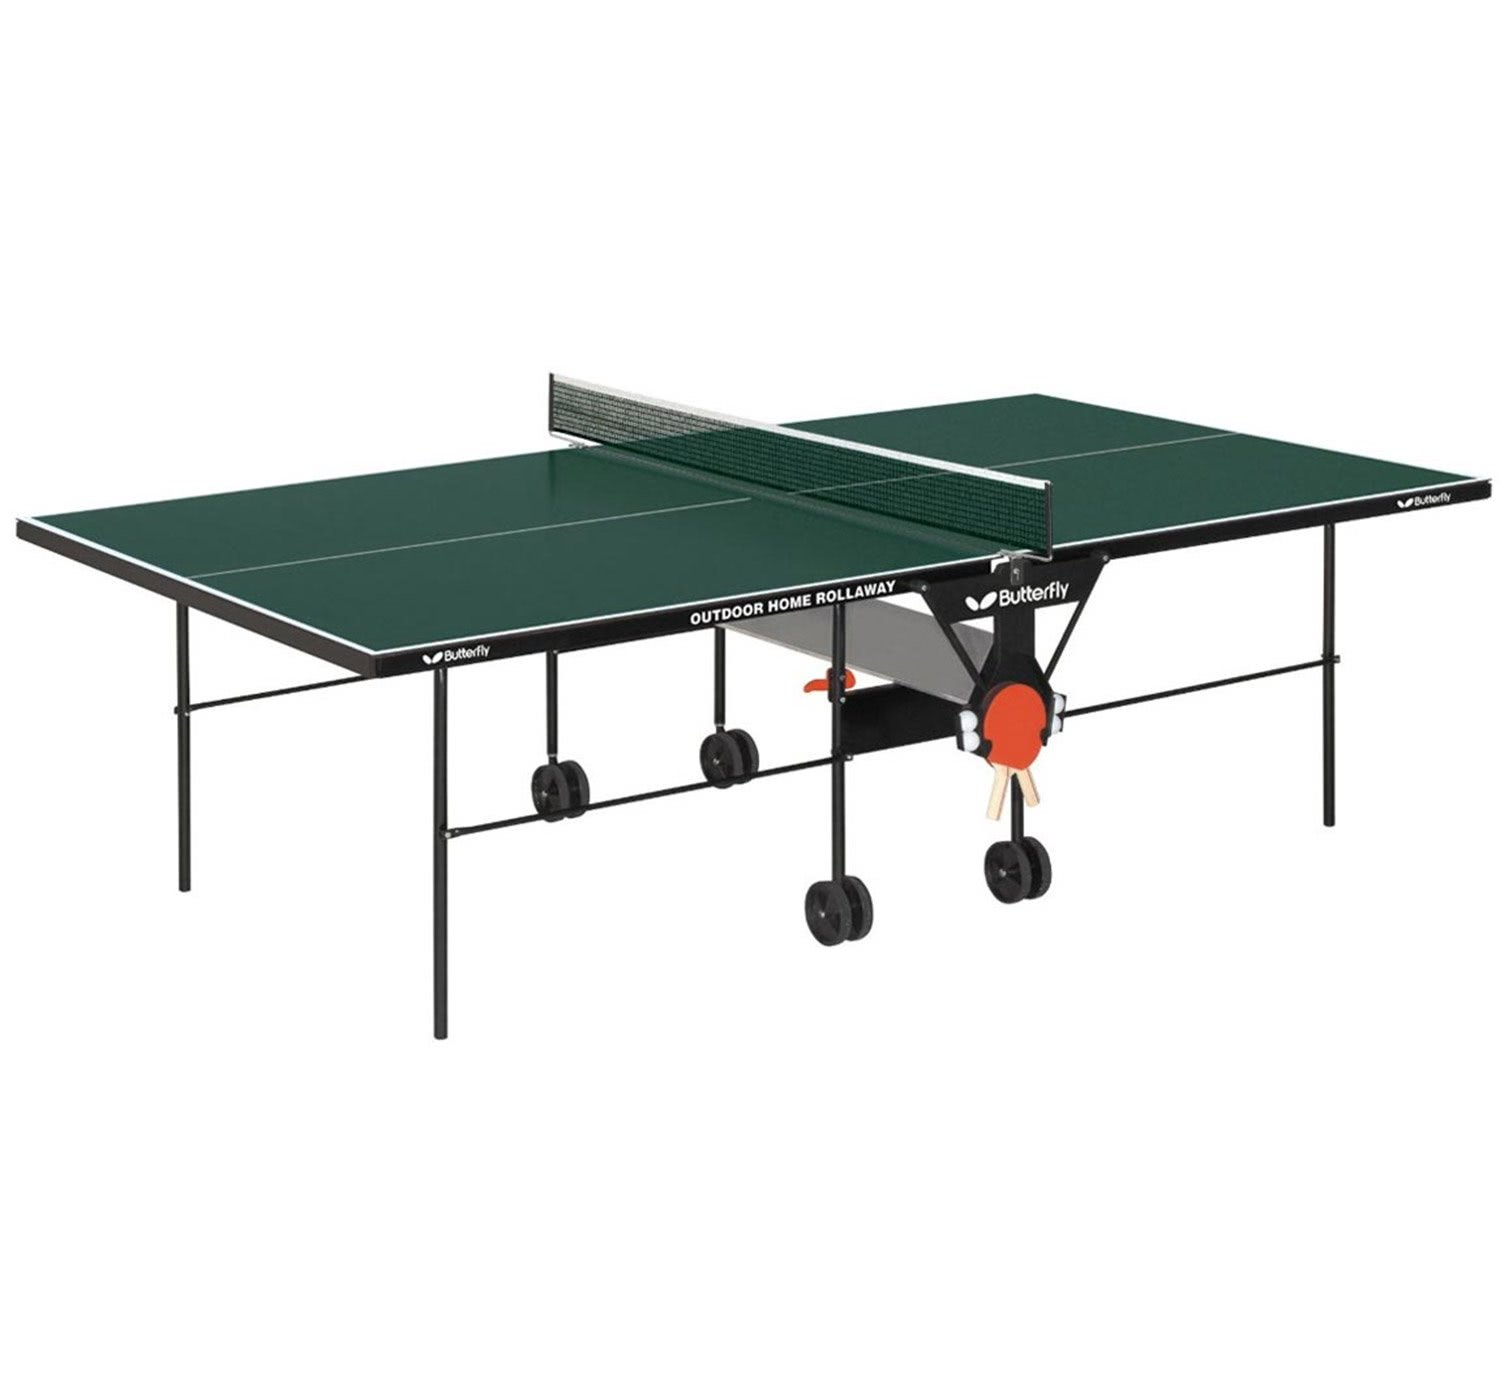 Butterfly Outdoor Home Rollaway Table Tennis Liberty Games